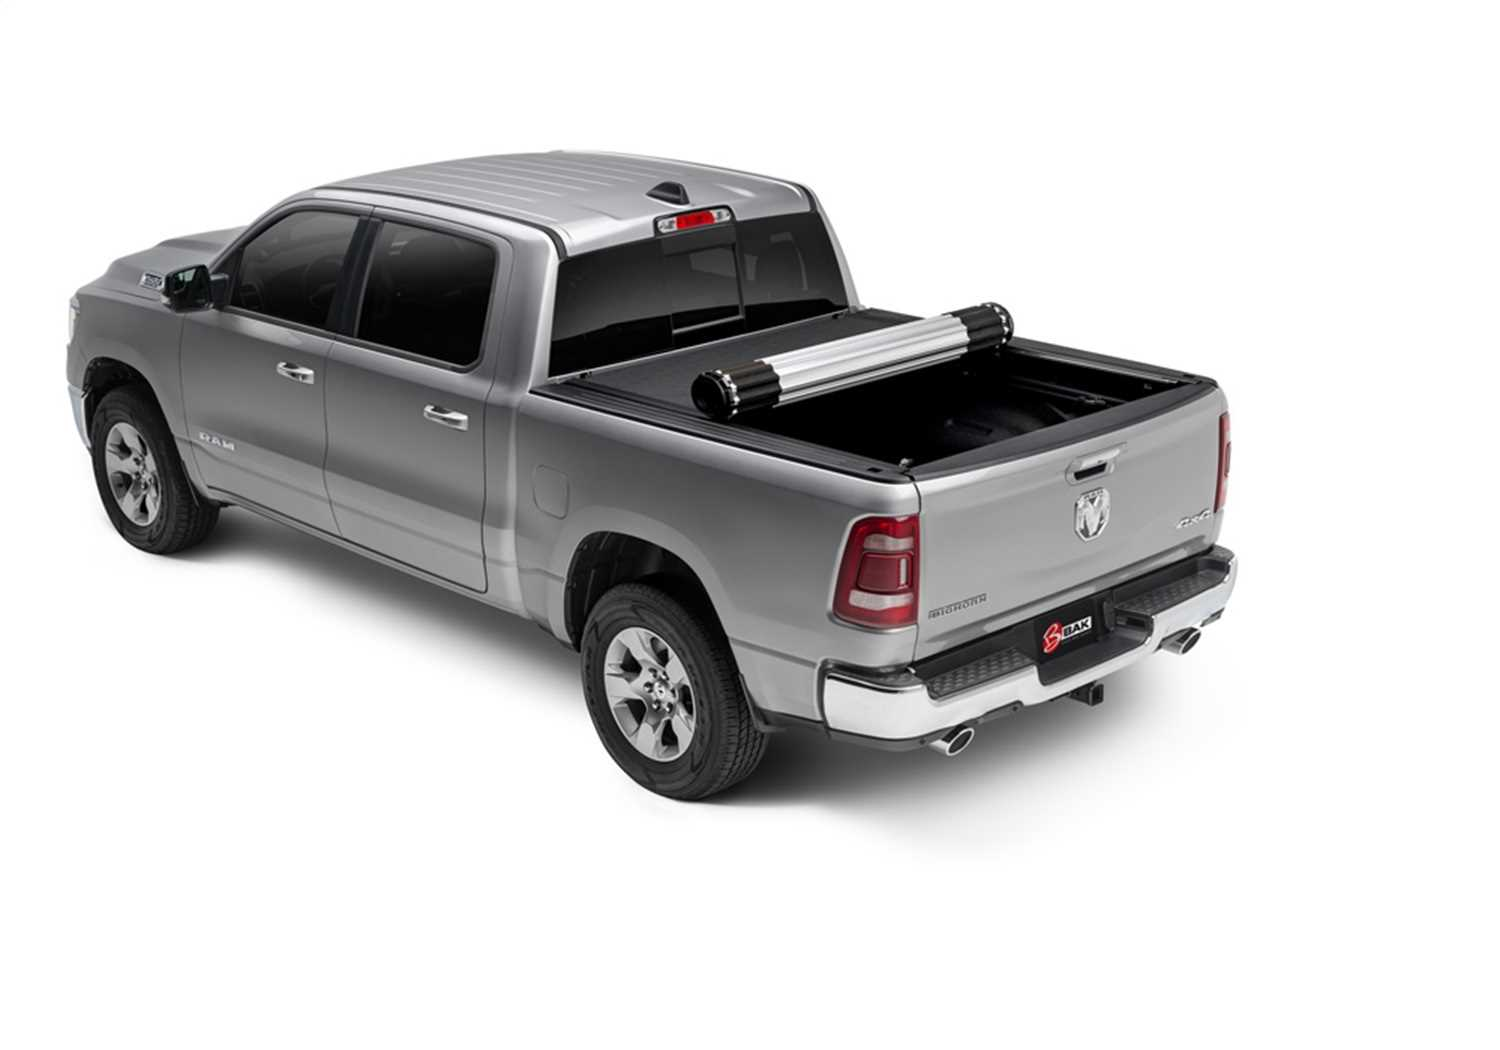 Bak Industries Revolver X4 Hard Rolling Truck Bed Cover 79227RB